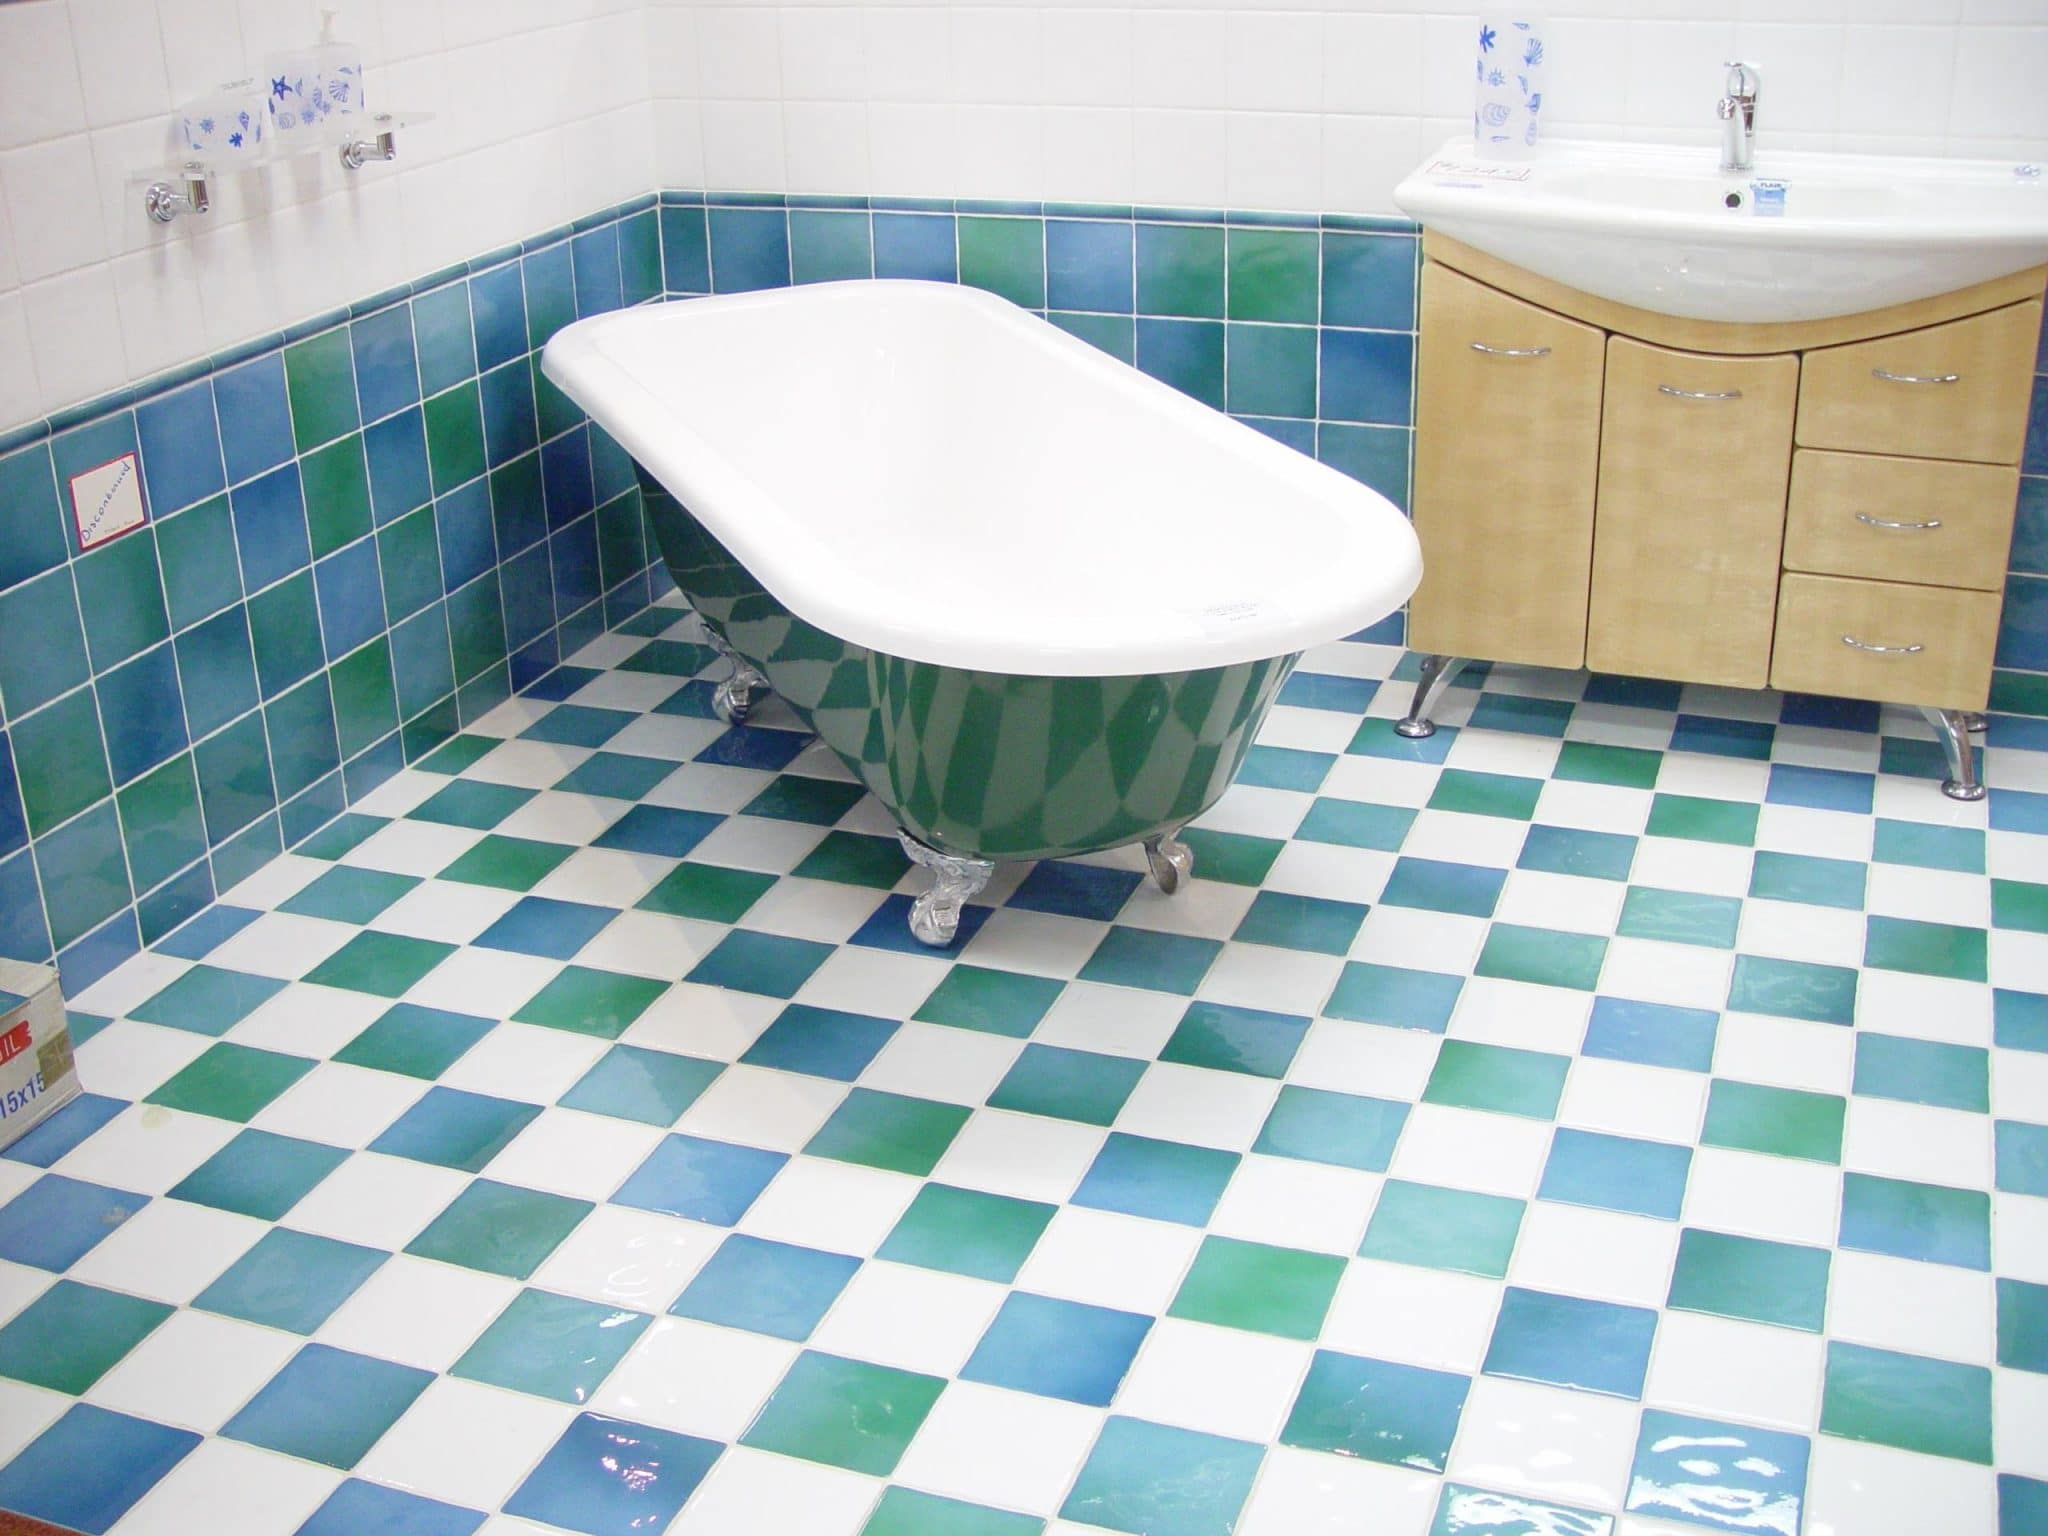 tile cleaning in racine, racine tile cleaning, the finest racine tile cleaners